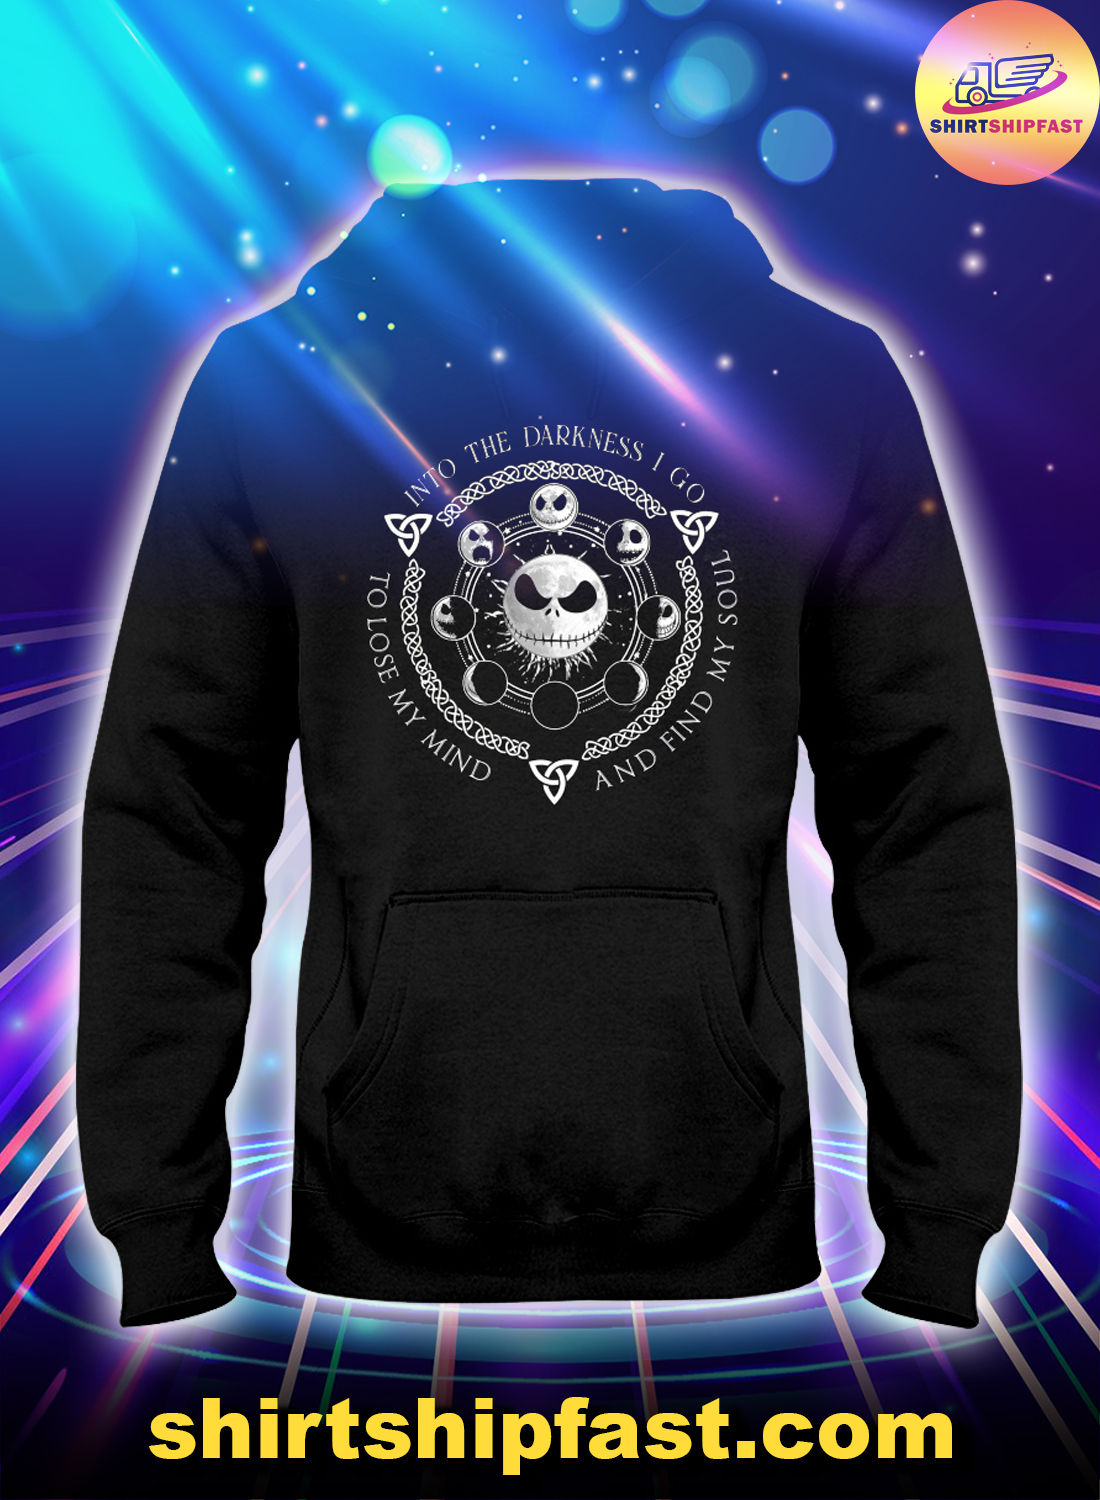 Jack Skellington Into the darkness I go to lose my mind and find my soul hoodie